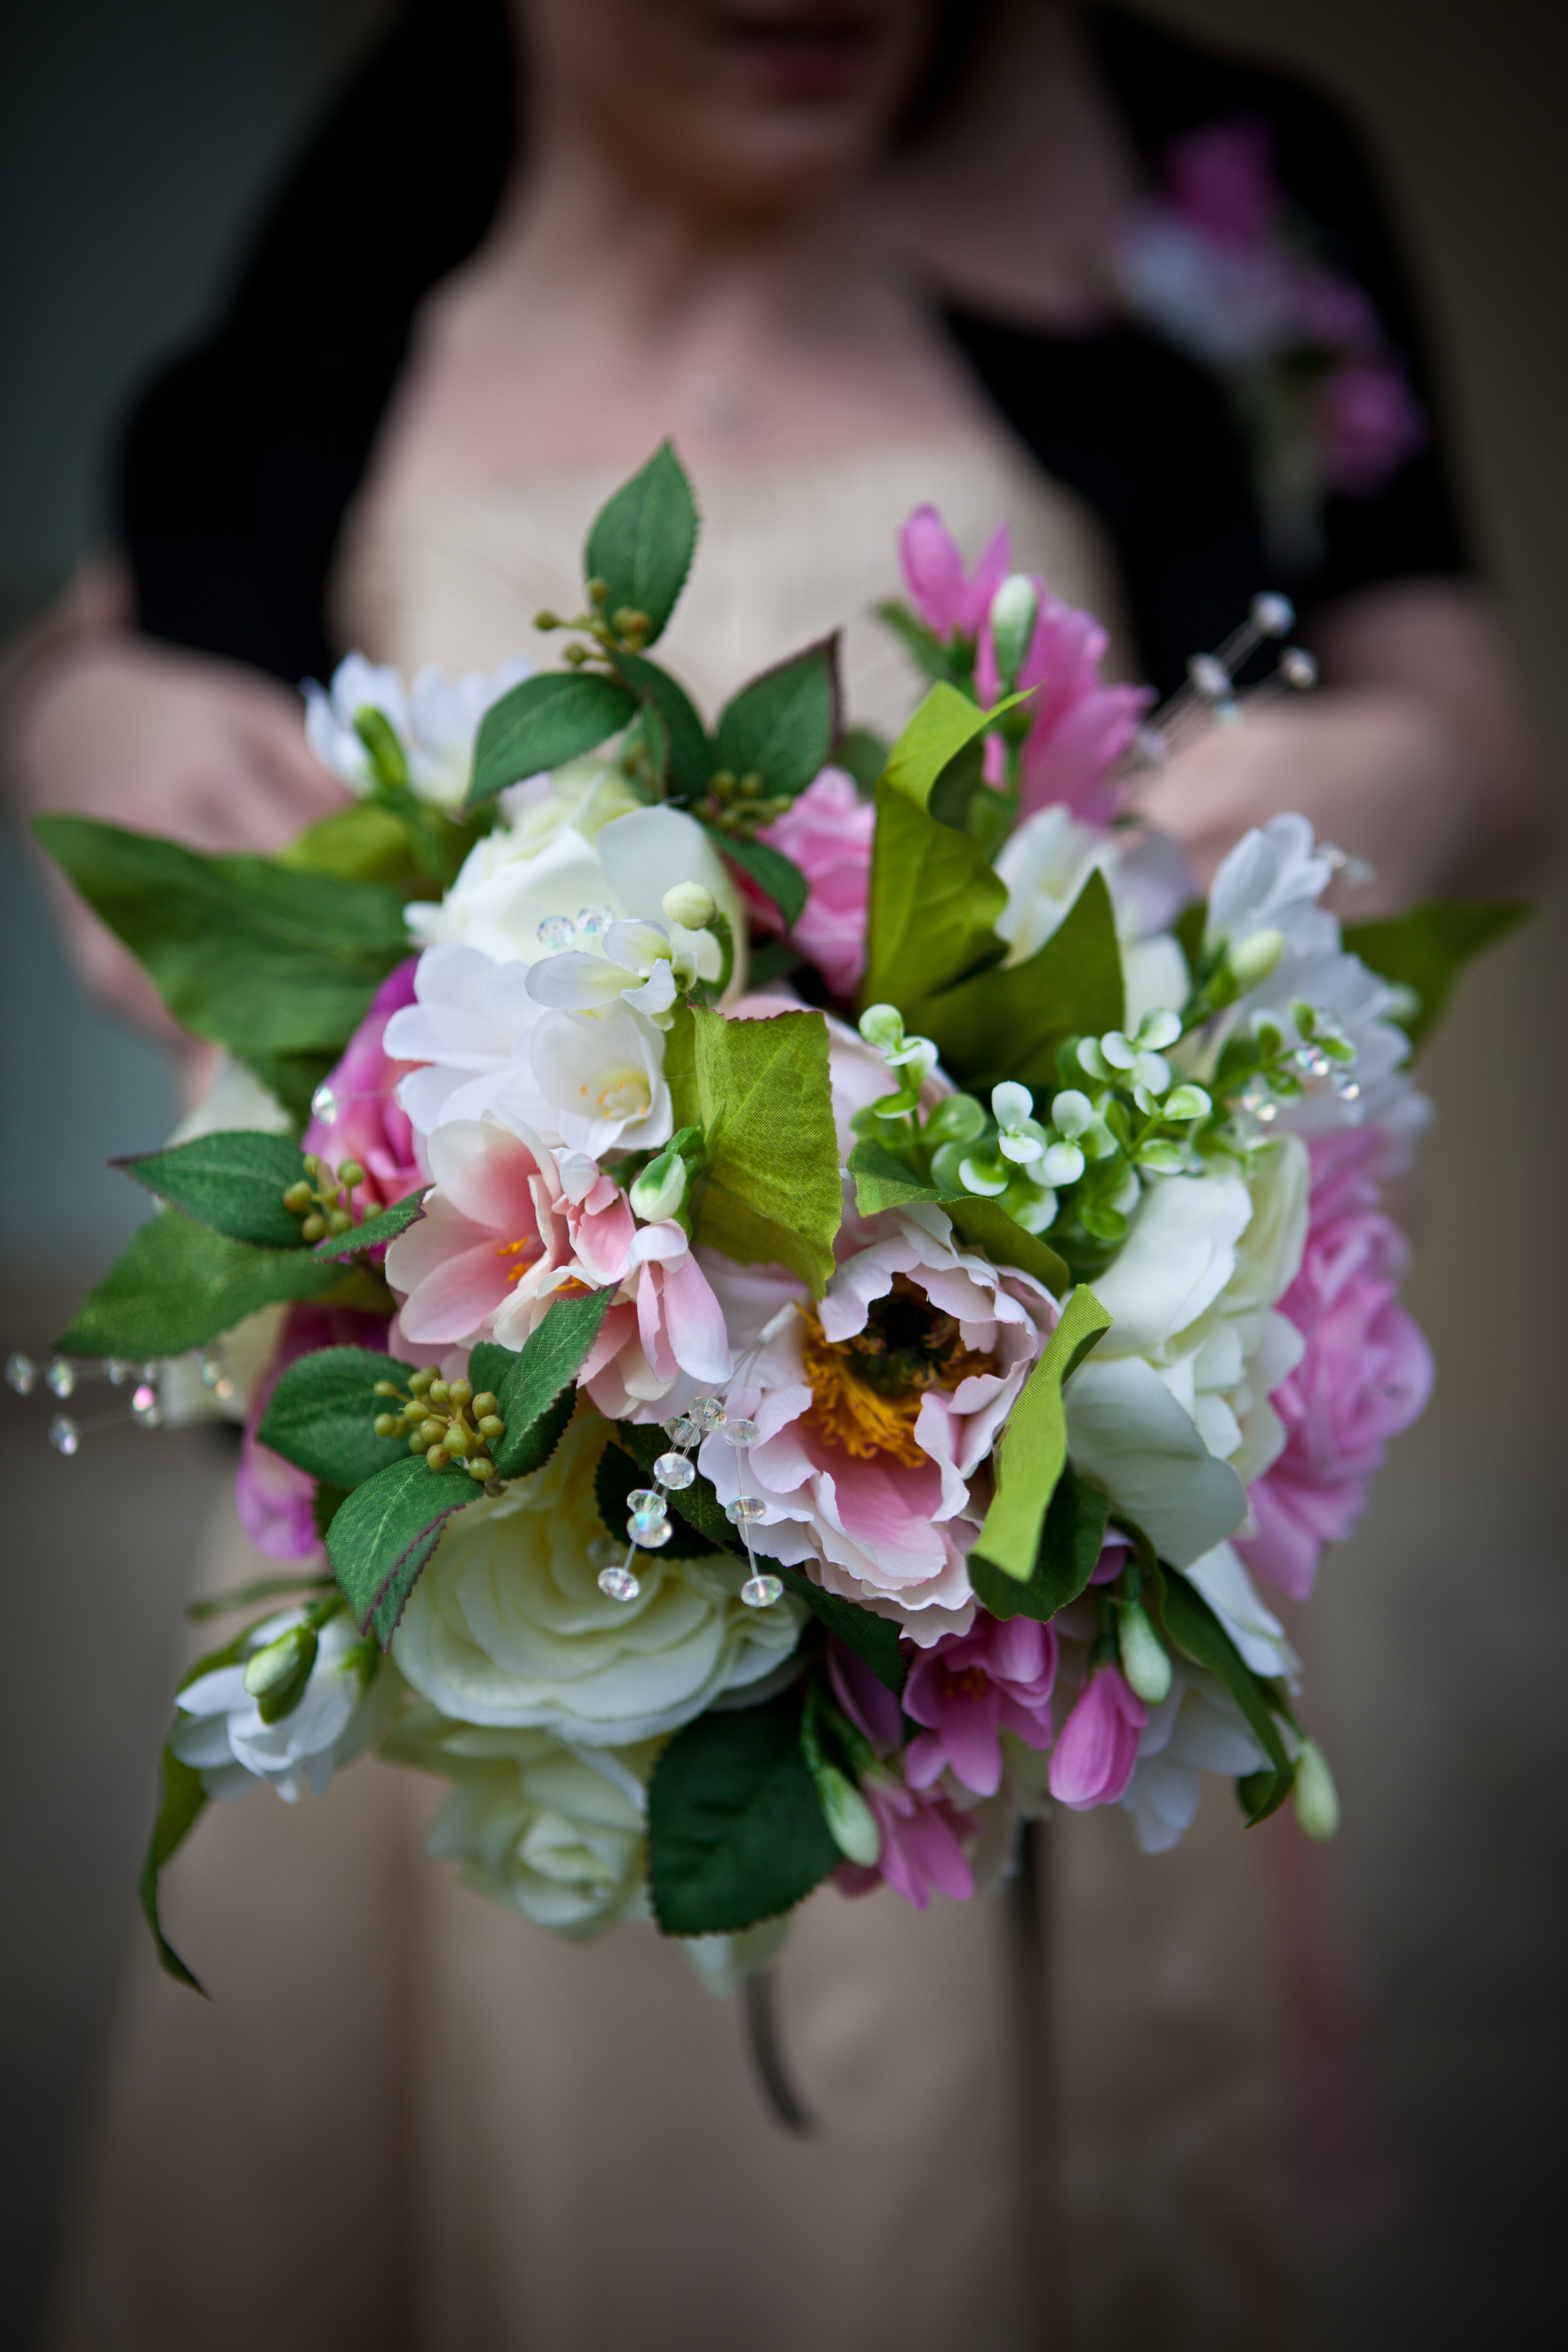 Brides Handtied Bouquet With Light Pink & Cream Peonies, Light Pink Roses & Eucalyptus